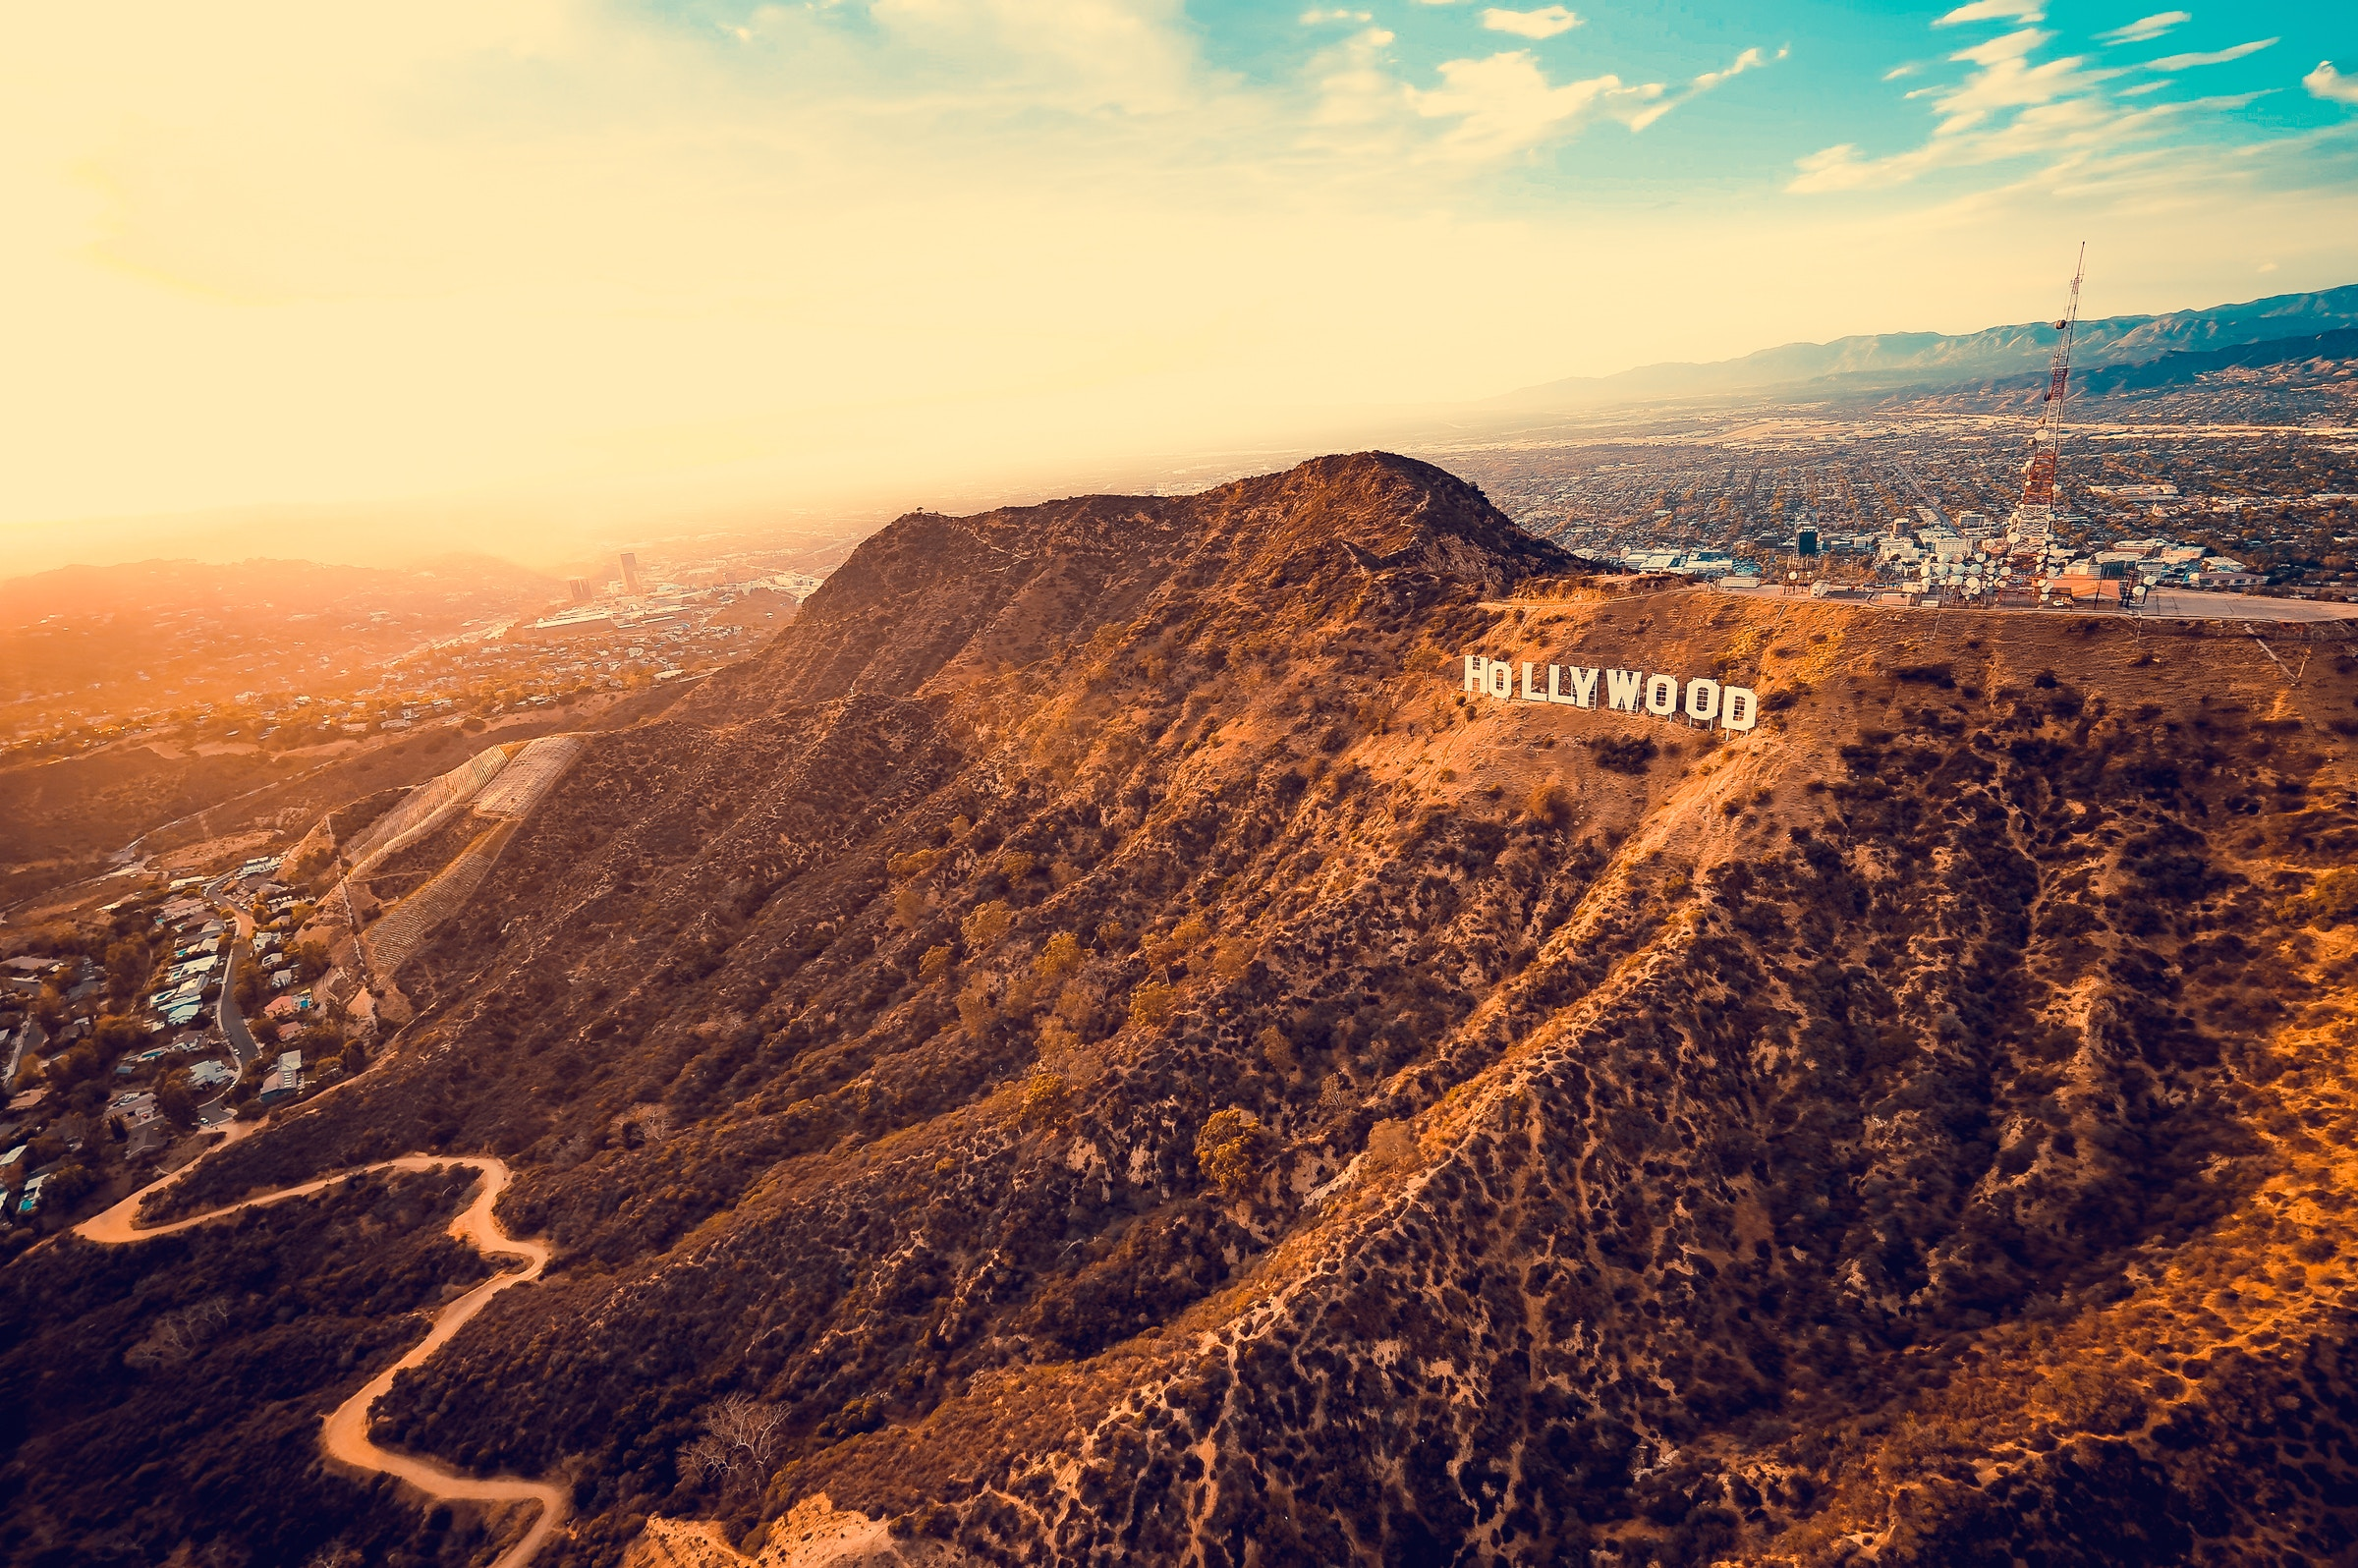 Flying into Los Angeles Featured Image